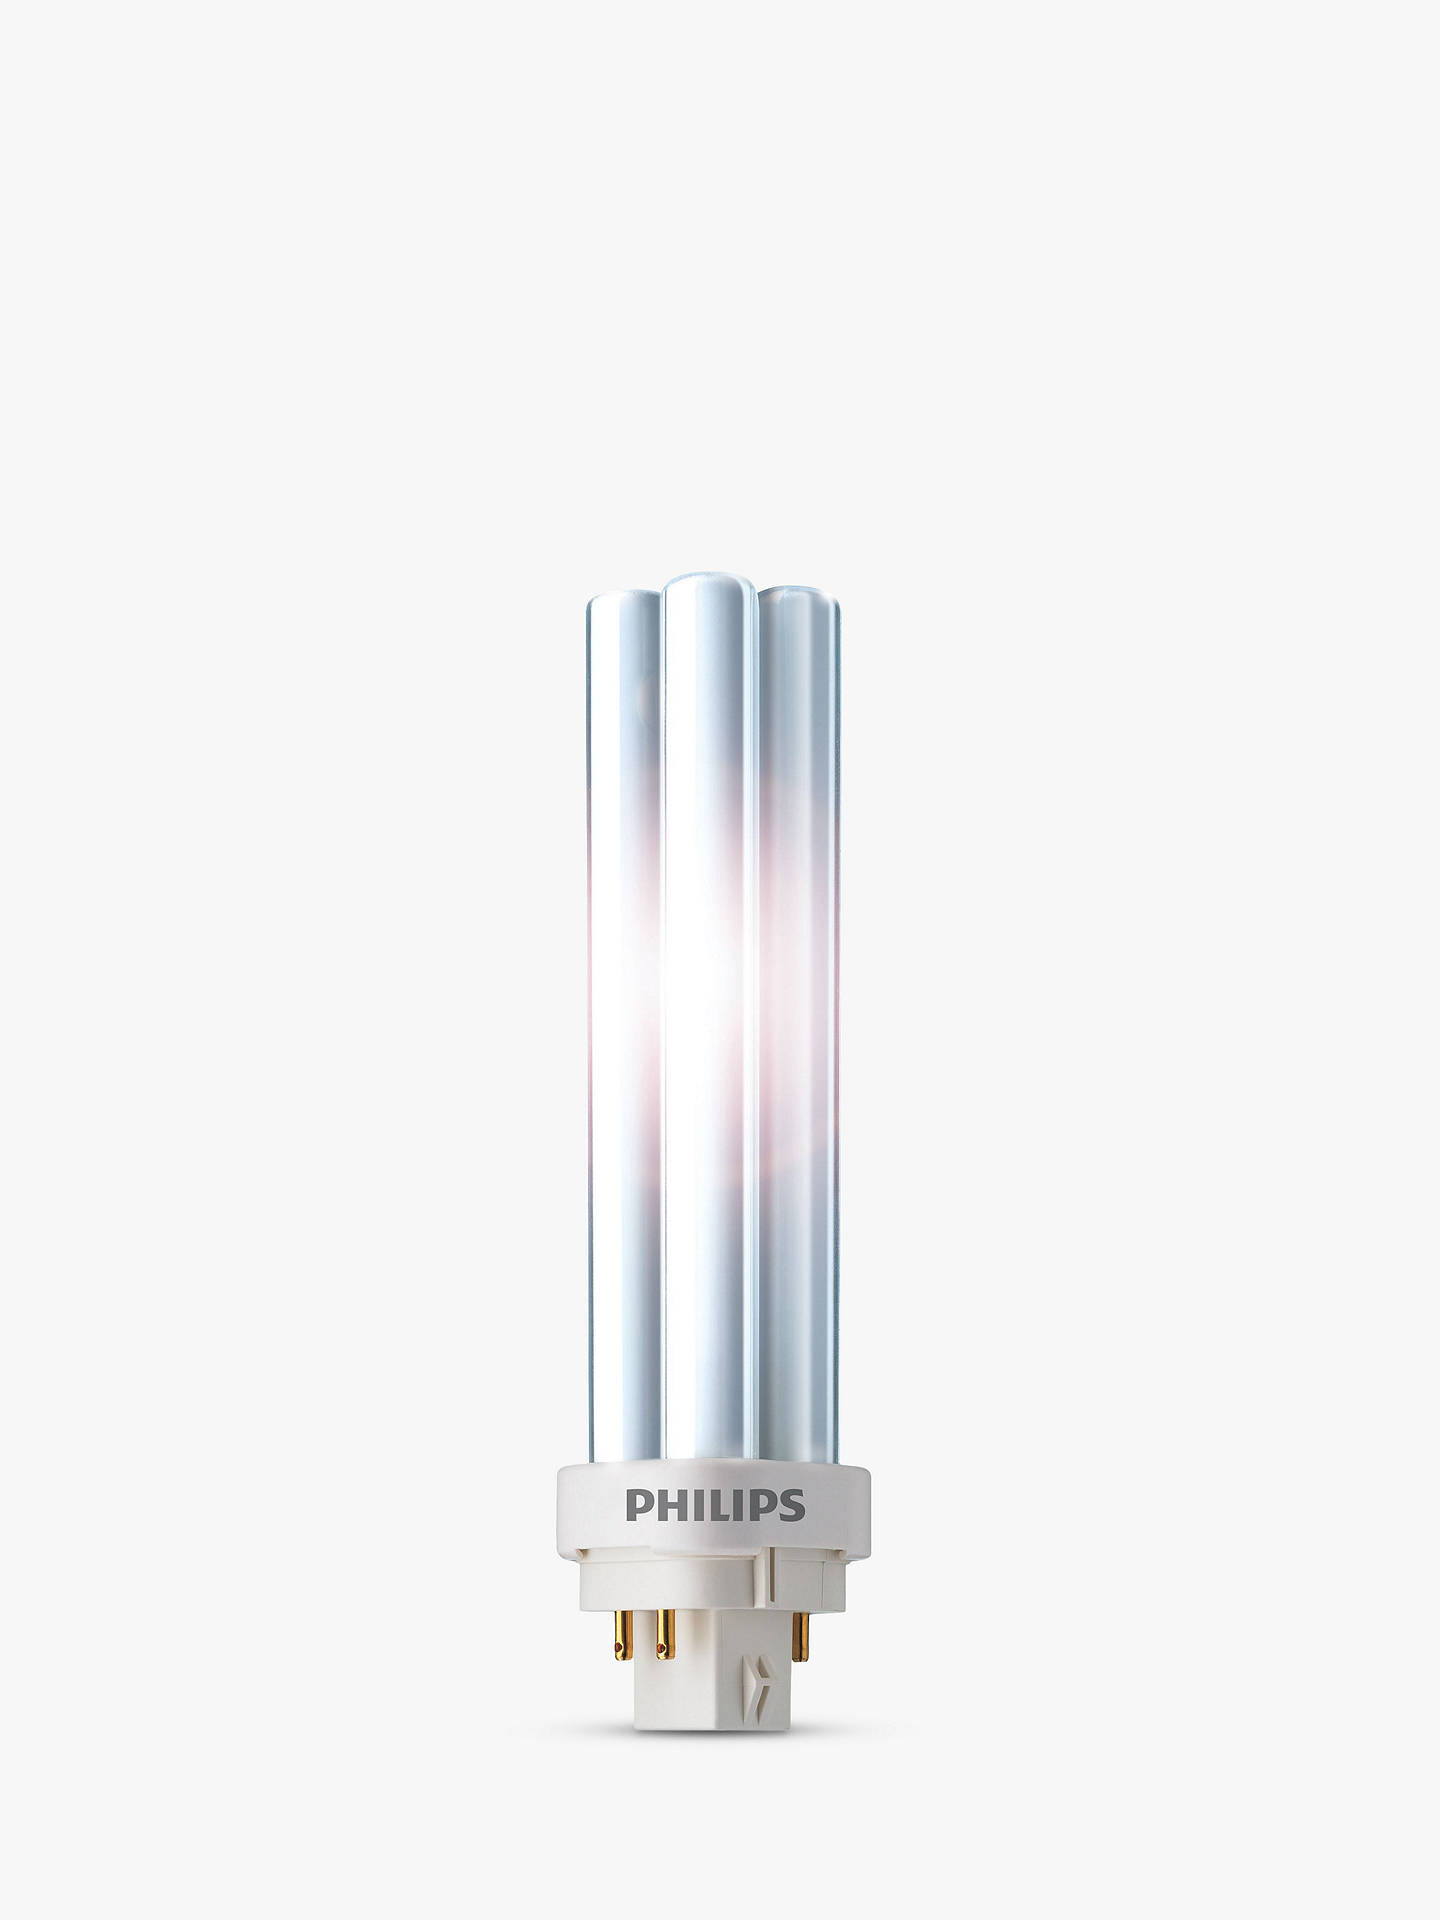 BuyPhilips PLC 4 Pin G24Q-827/4P Energy Saver Bulb, 10W Online at johnlewis.com